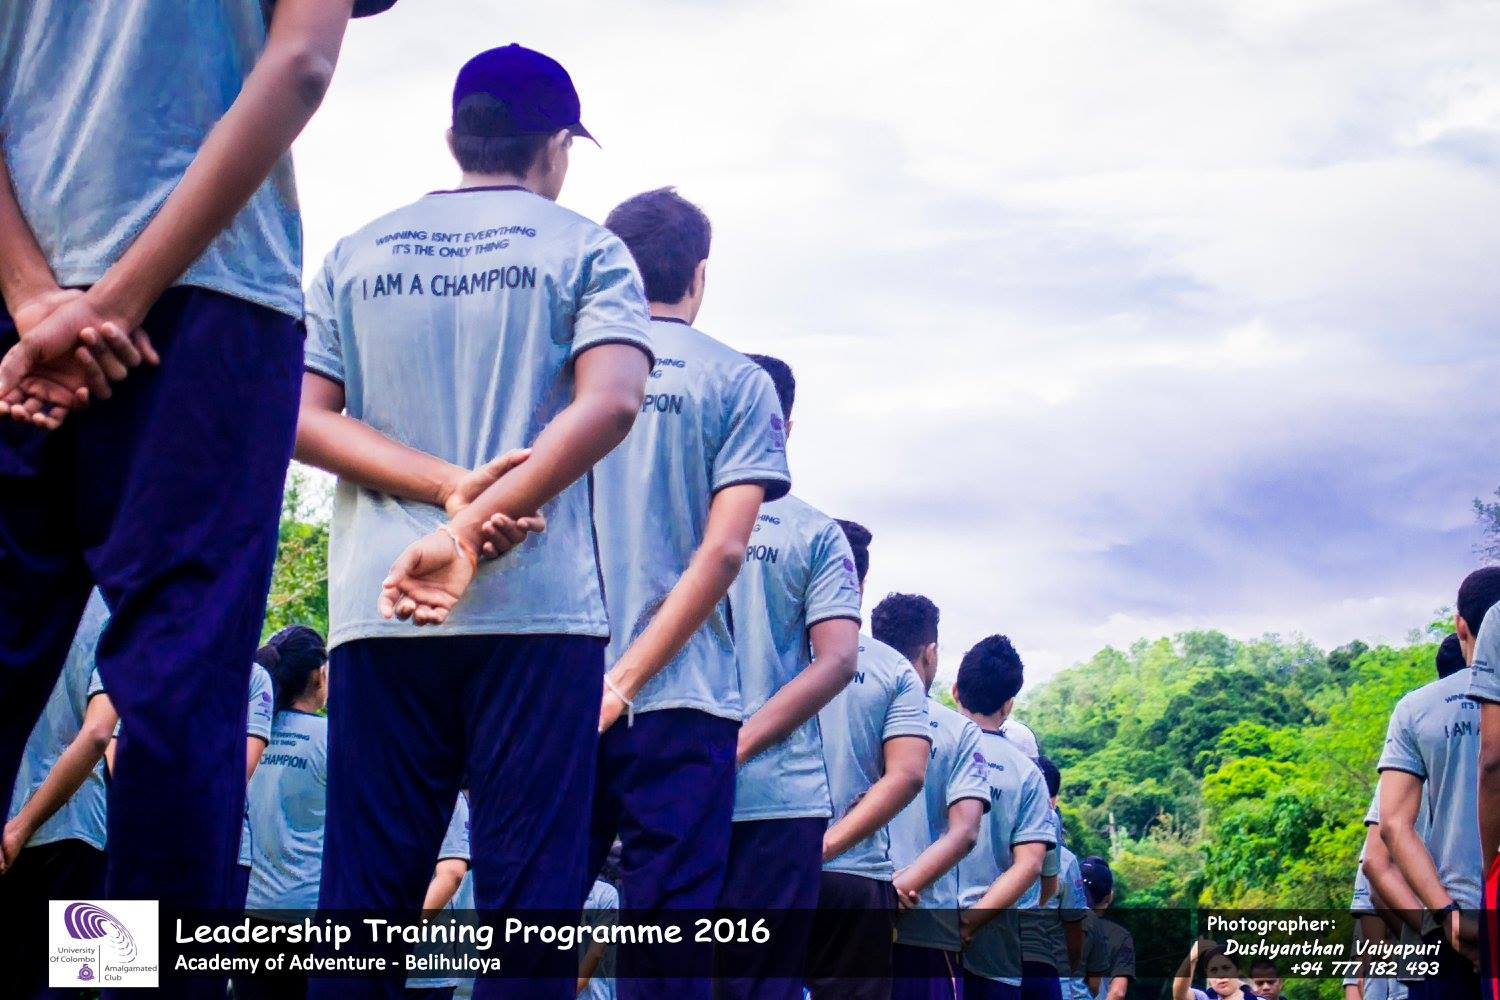 Leadership & Adventure Training Programme